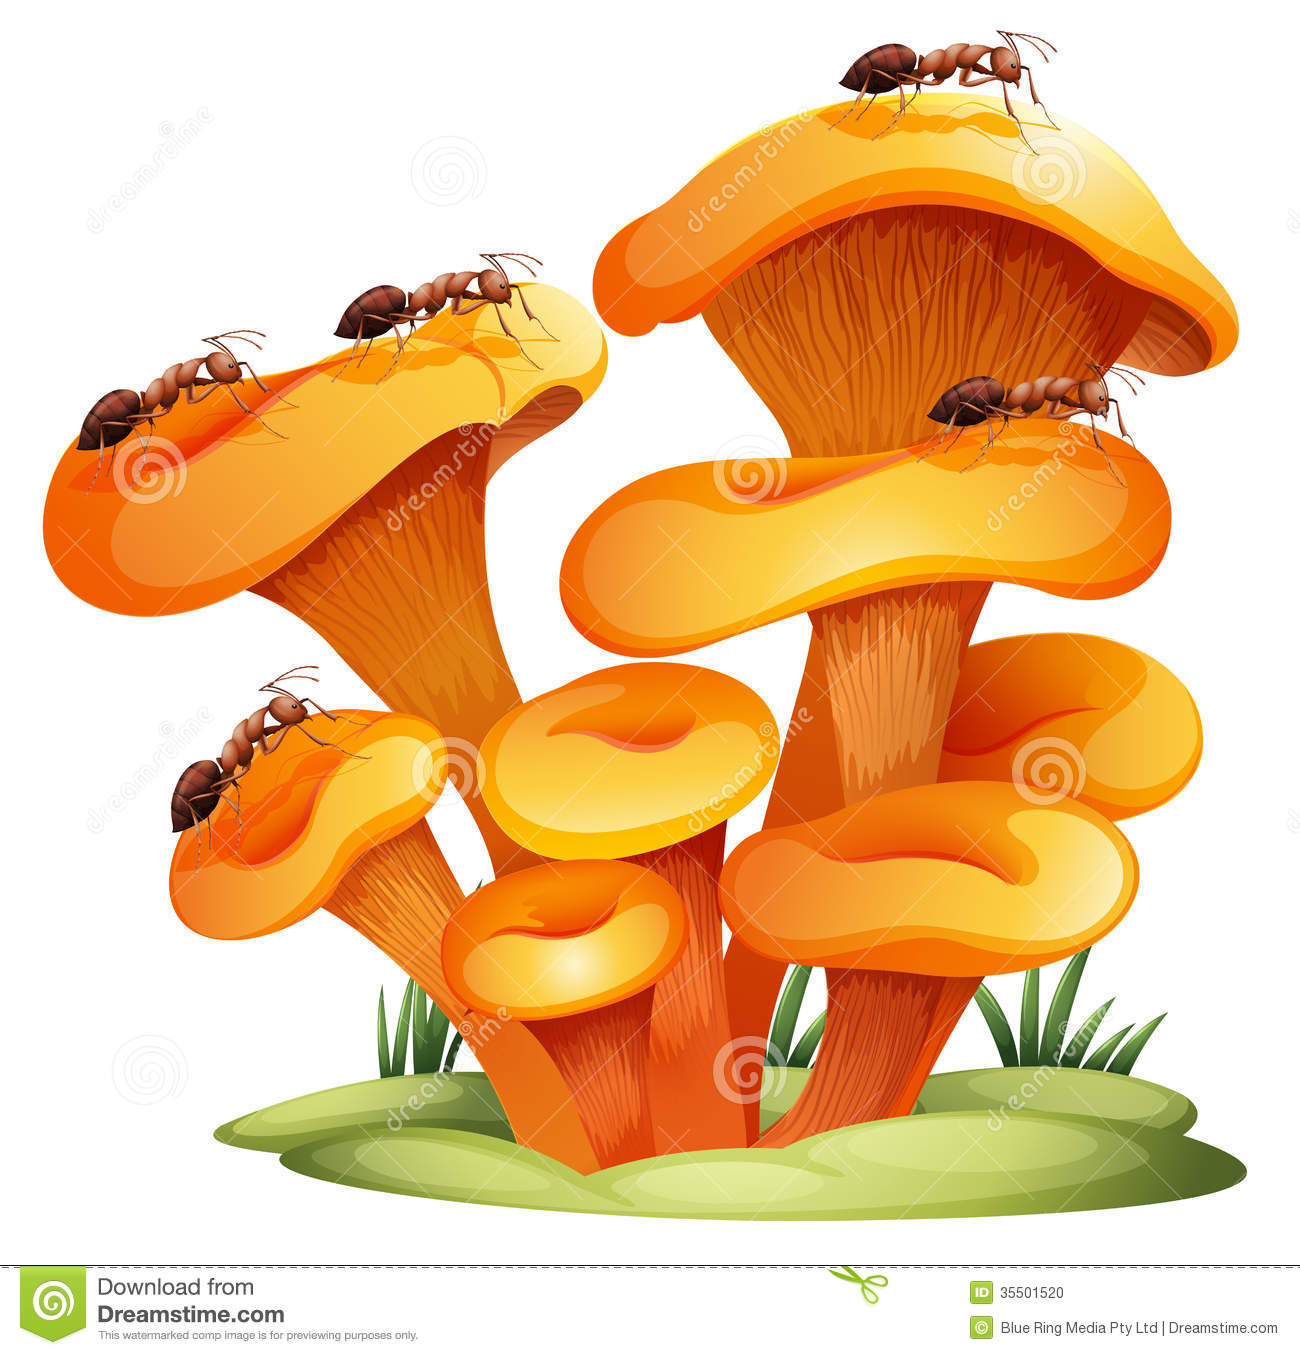 fungus clipart clipground Team Roping Drawings Team Roping Drawings